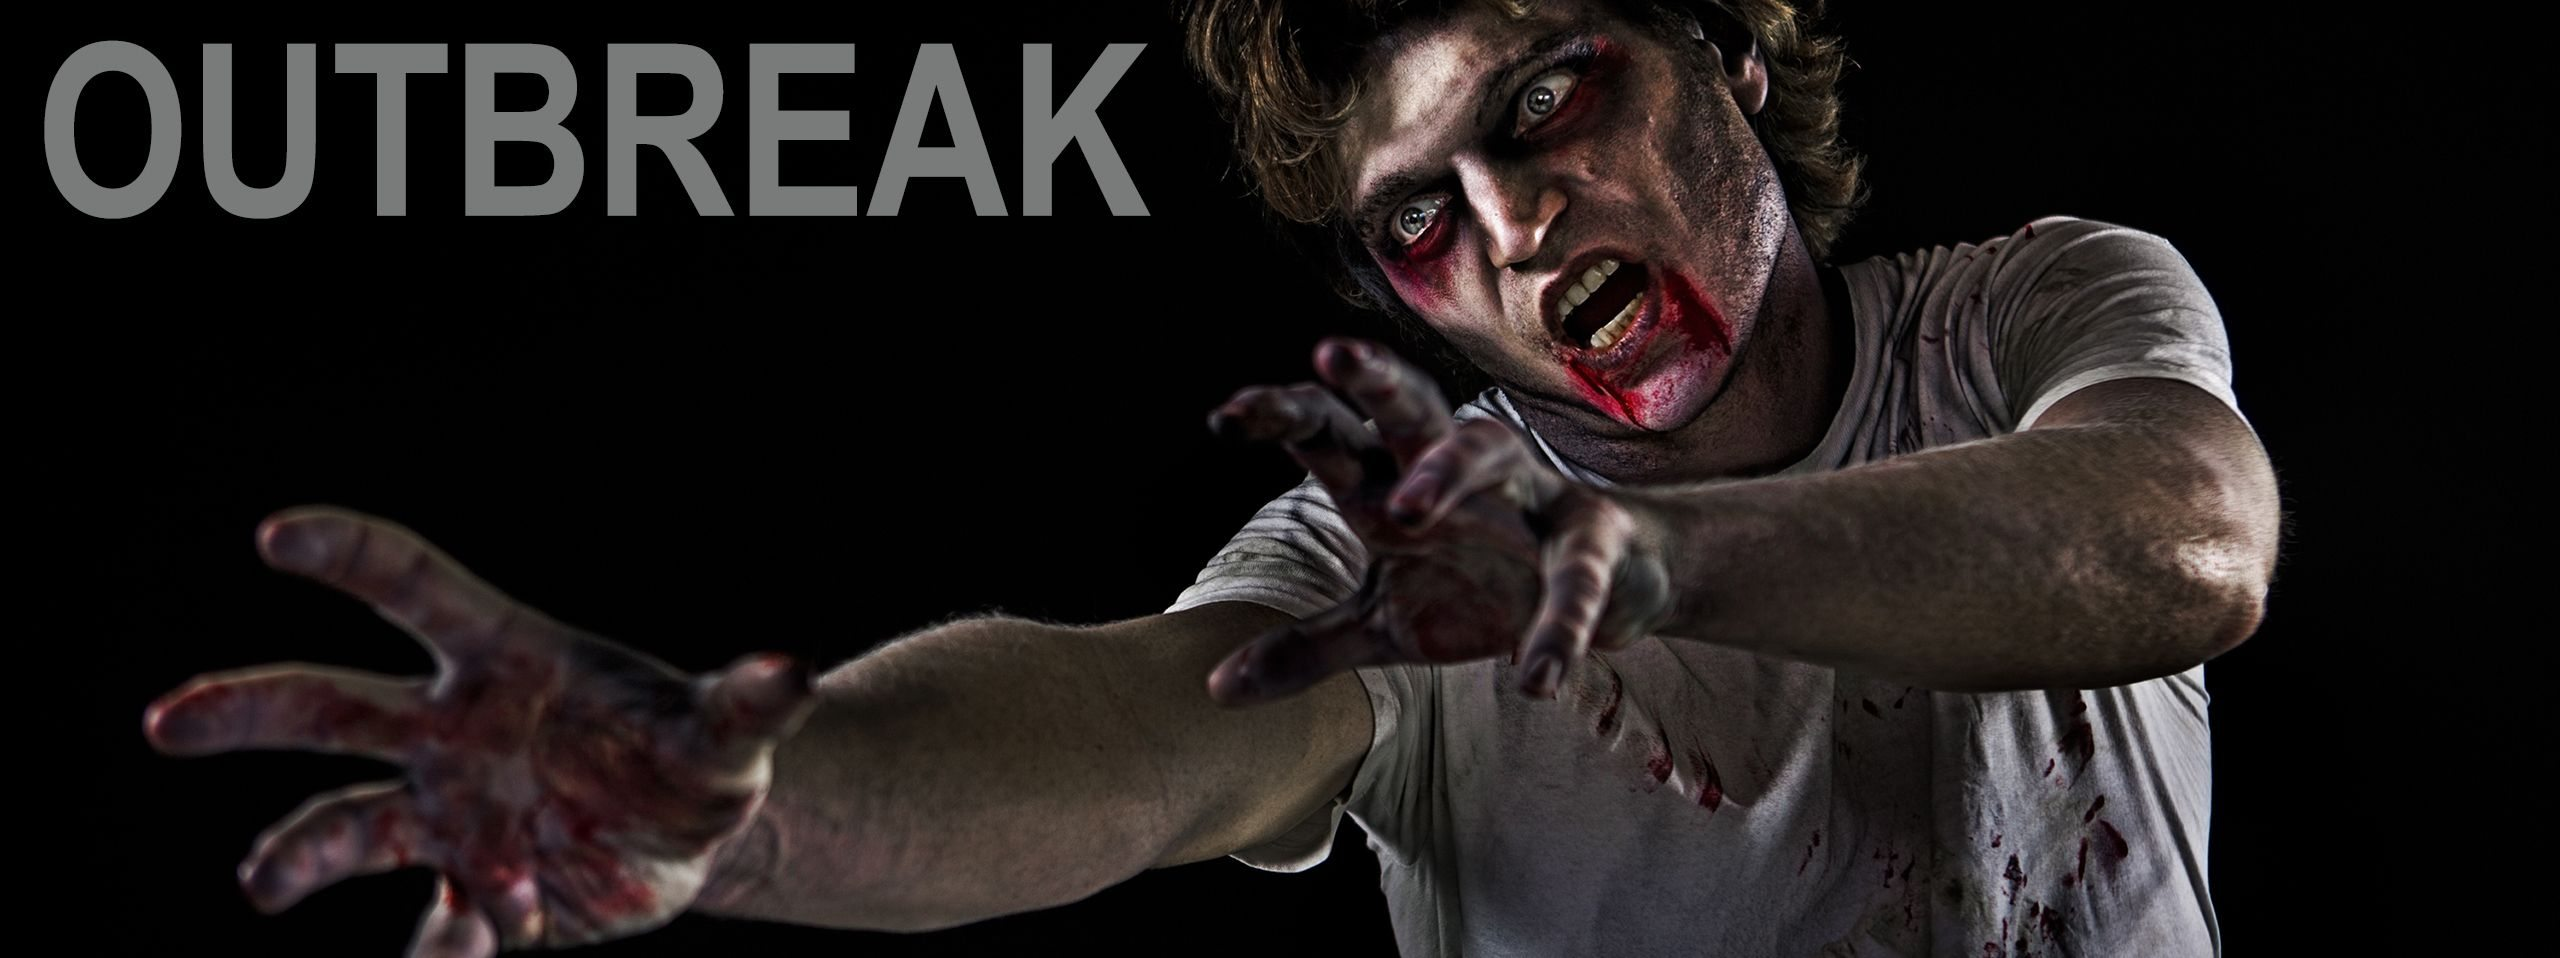 big_escape_outbreak_header